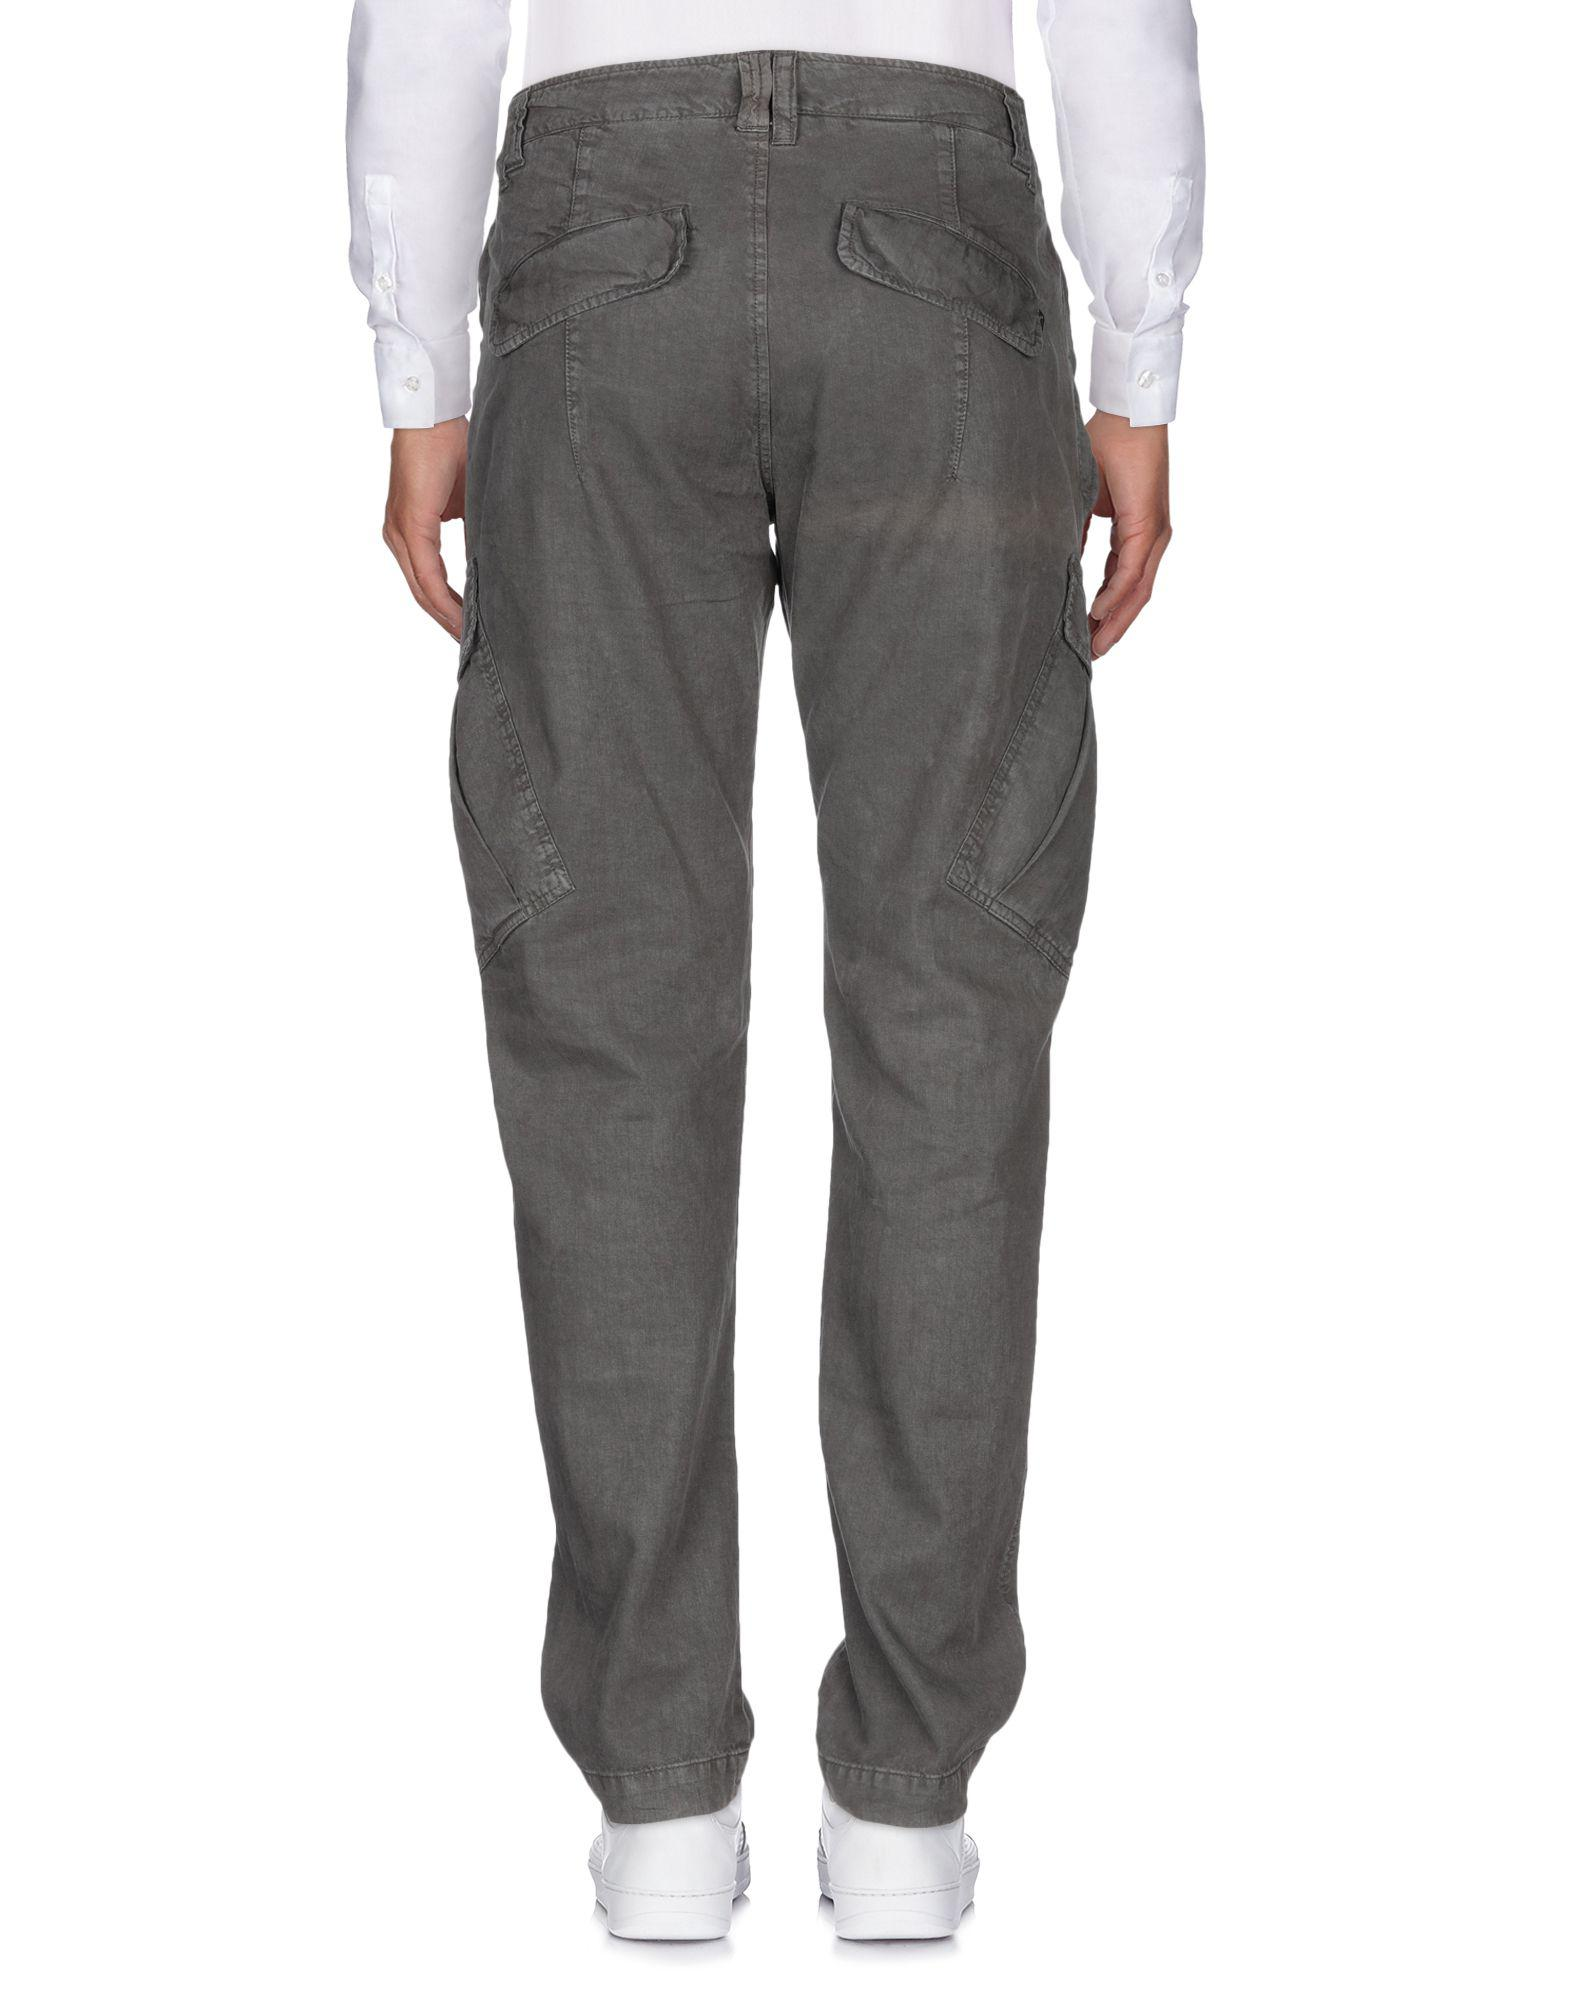 Dondup Linen Casual Pants in Lead (Grey) for Men